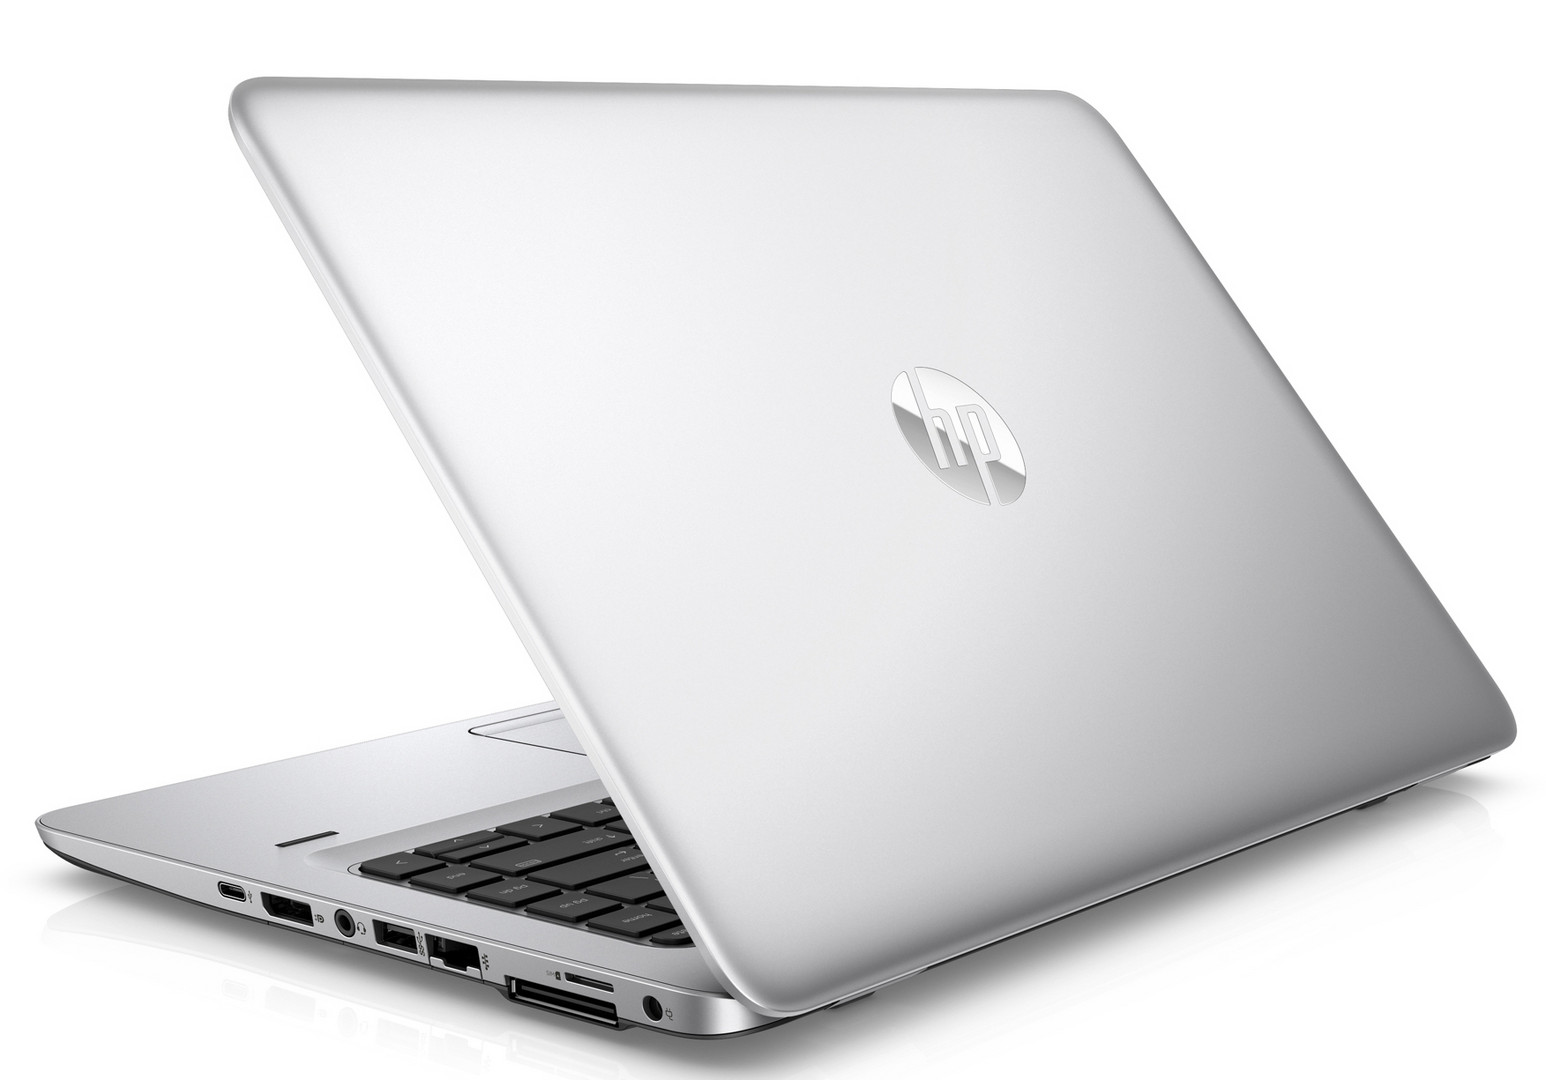 HP mt43 (A8-9600B, SSD, FHD) Thin Client Review - NotebookCheck net